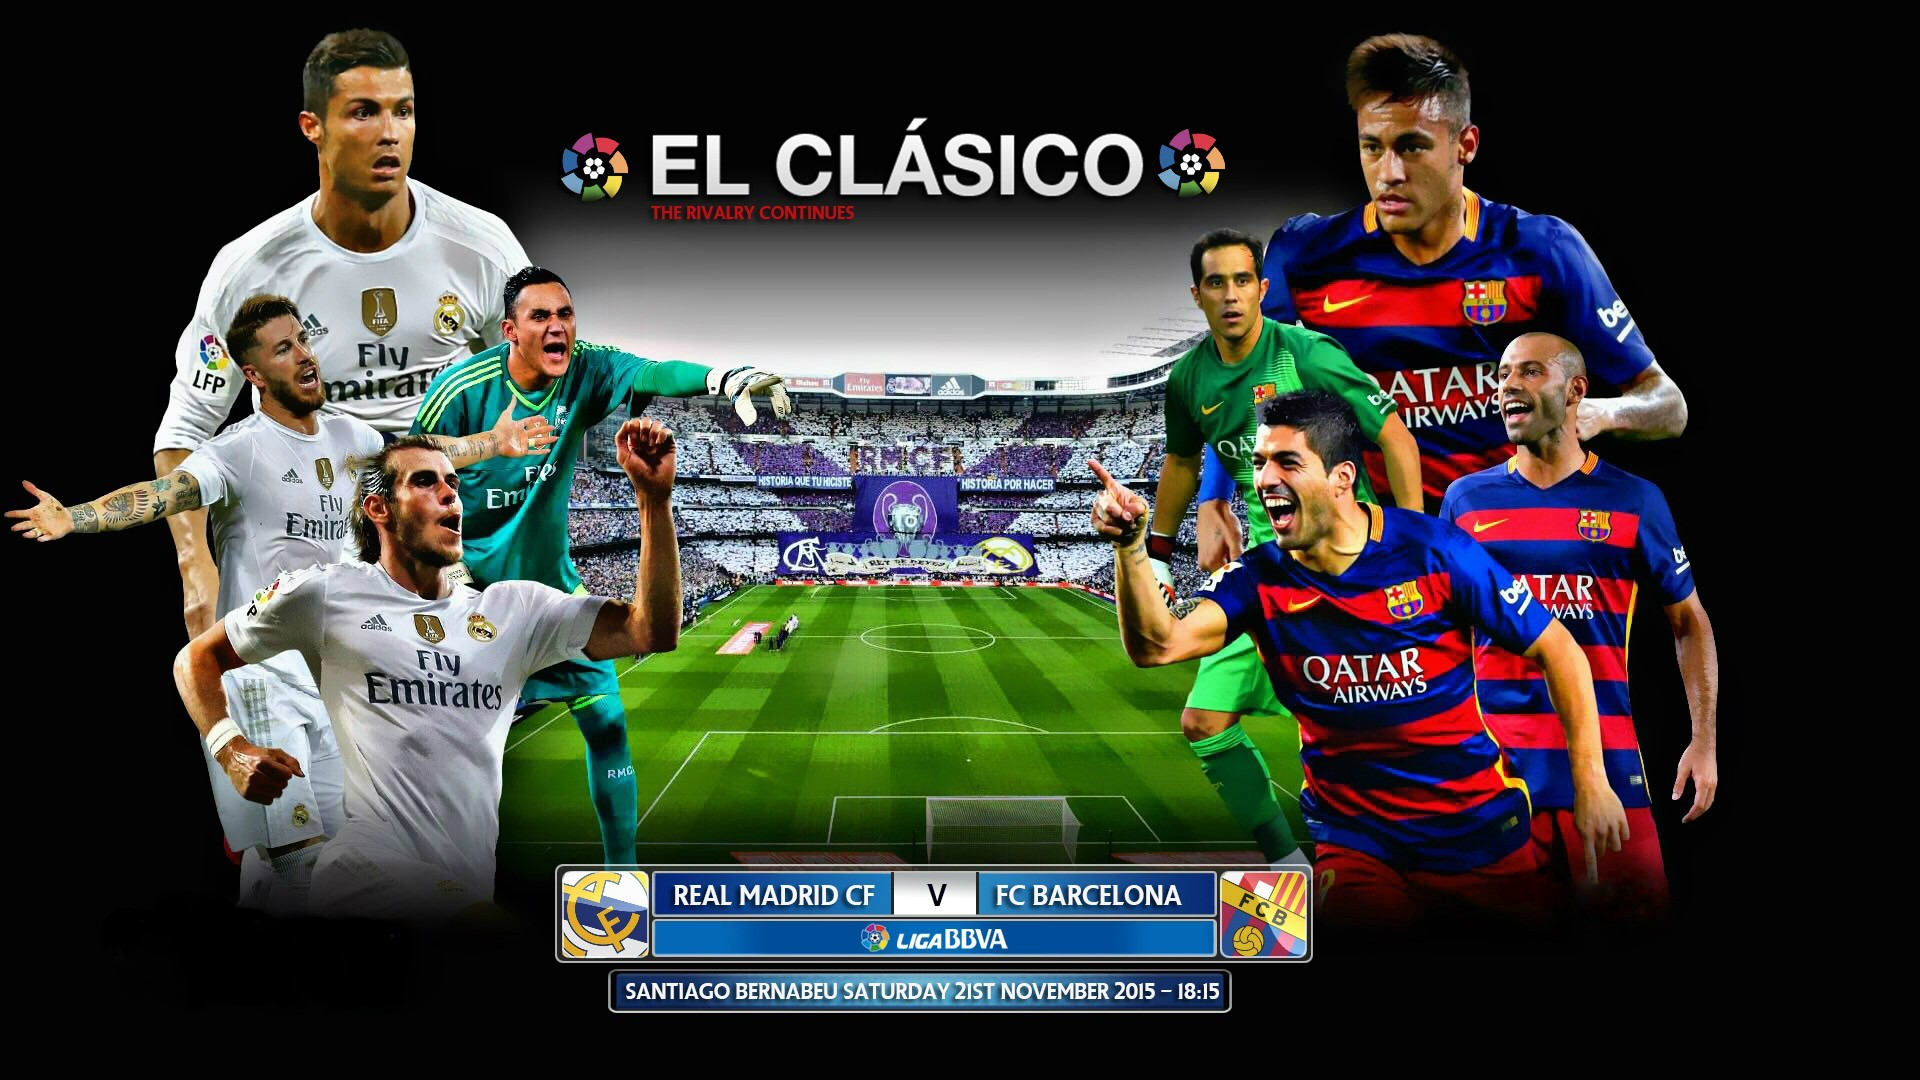 Download Real Madrid vs FC Barcelona 2015 El Clasico HD Wallpaper 1920x1080